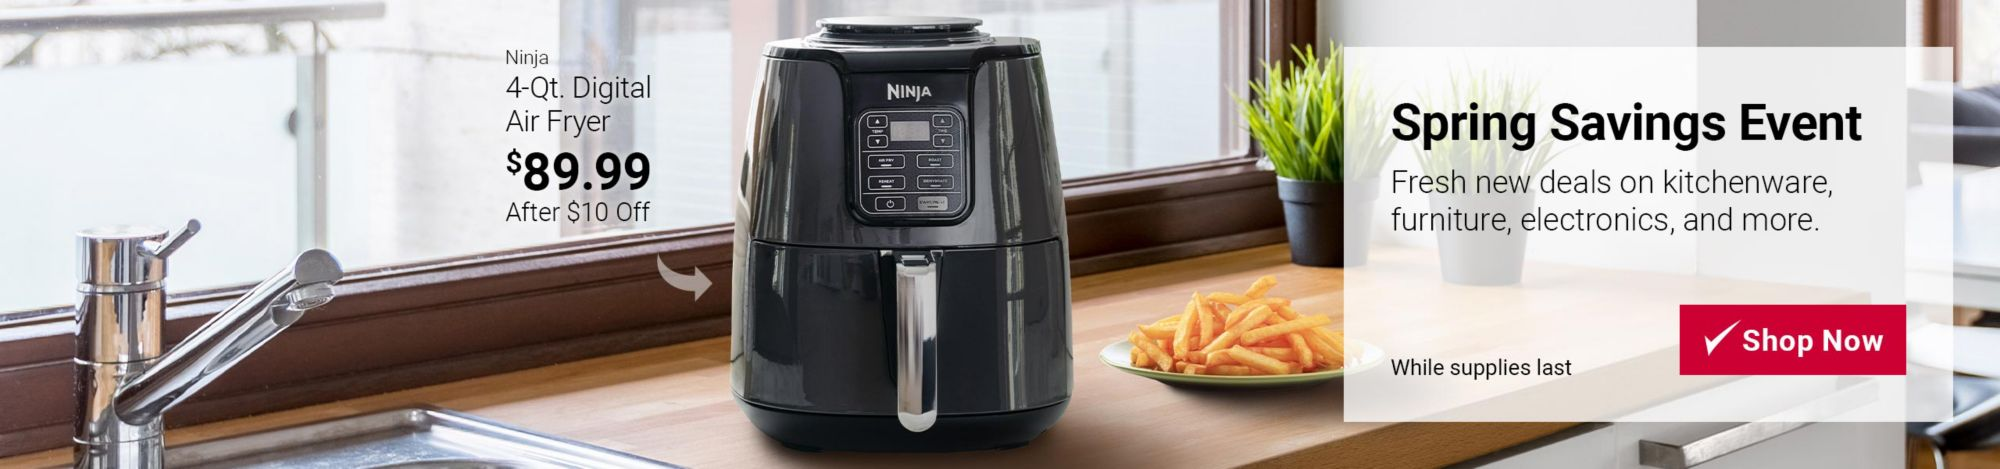 Spring Savings Event featured deal: $10 off Ninja 4 quart digital air fryer. Now $89.99. Click here to shop now. While supplies last.